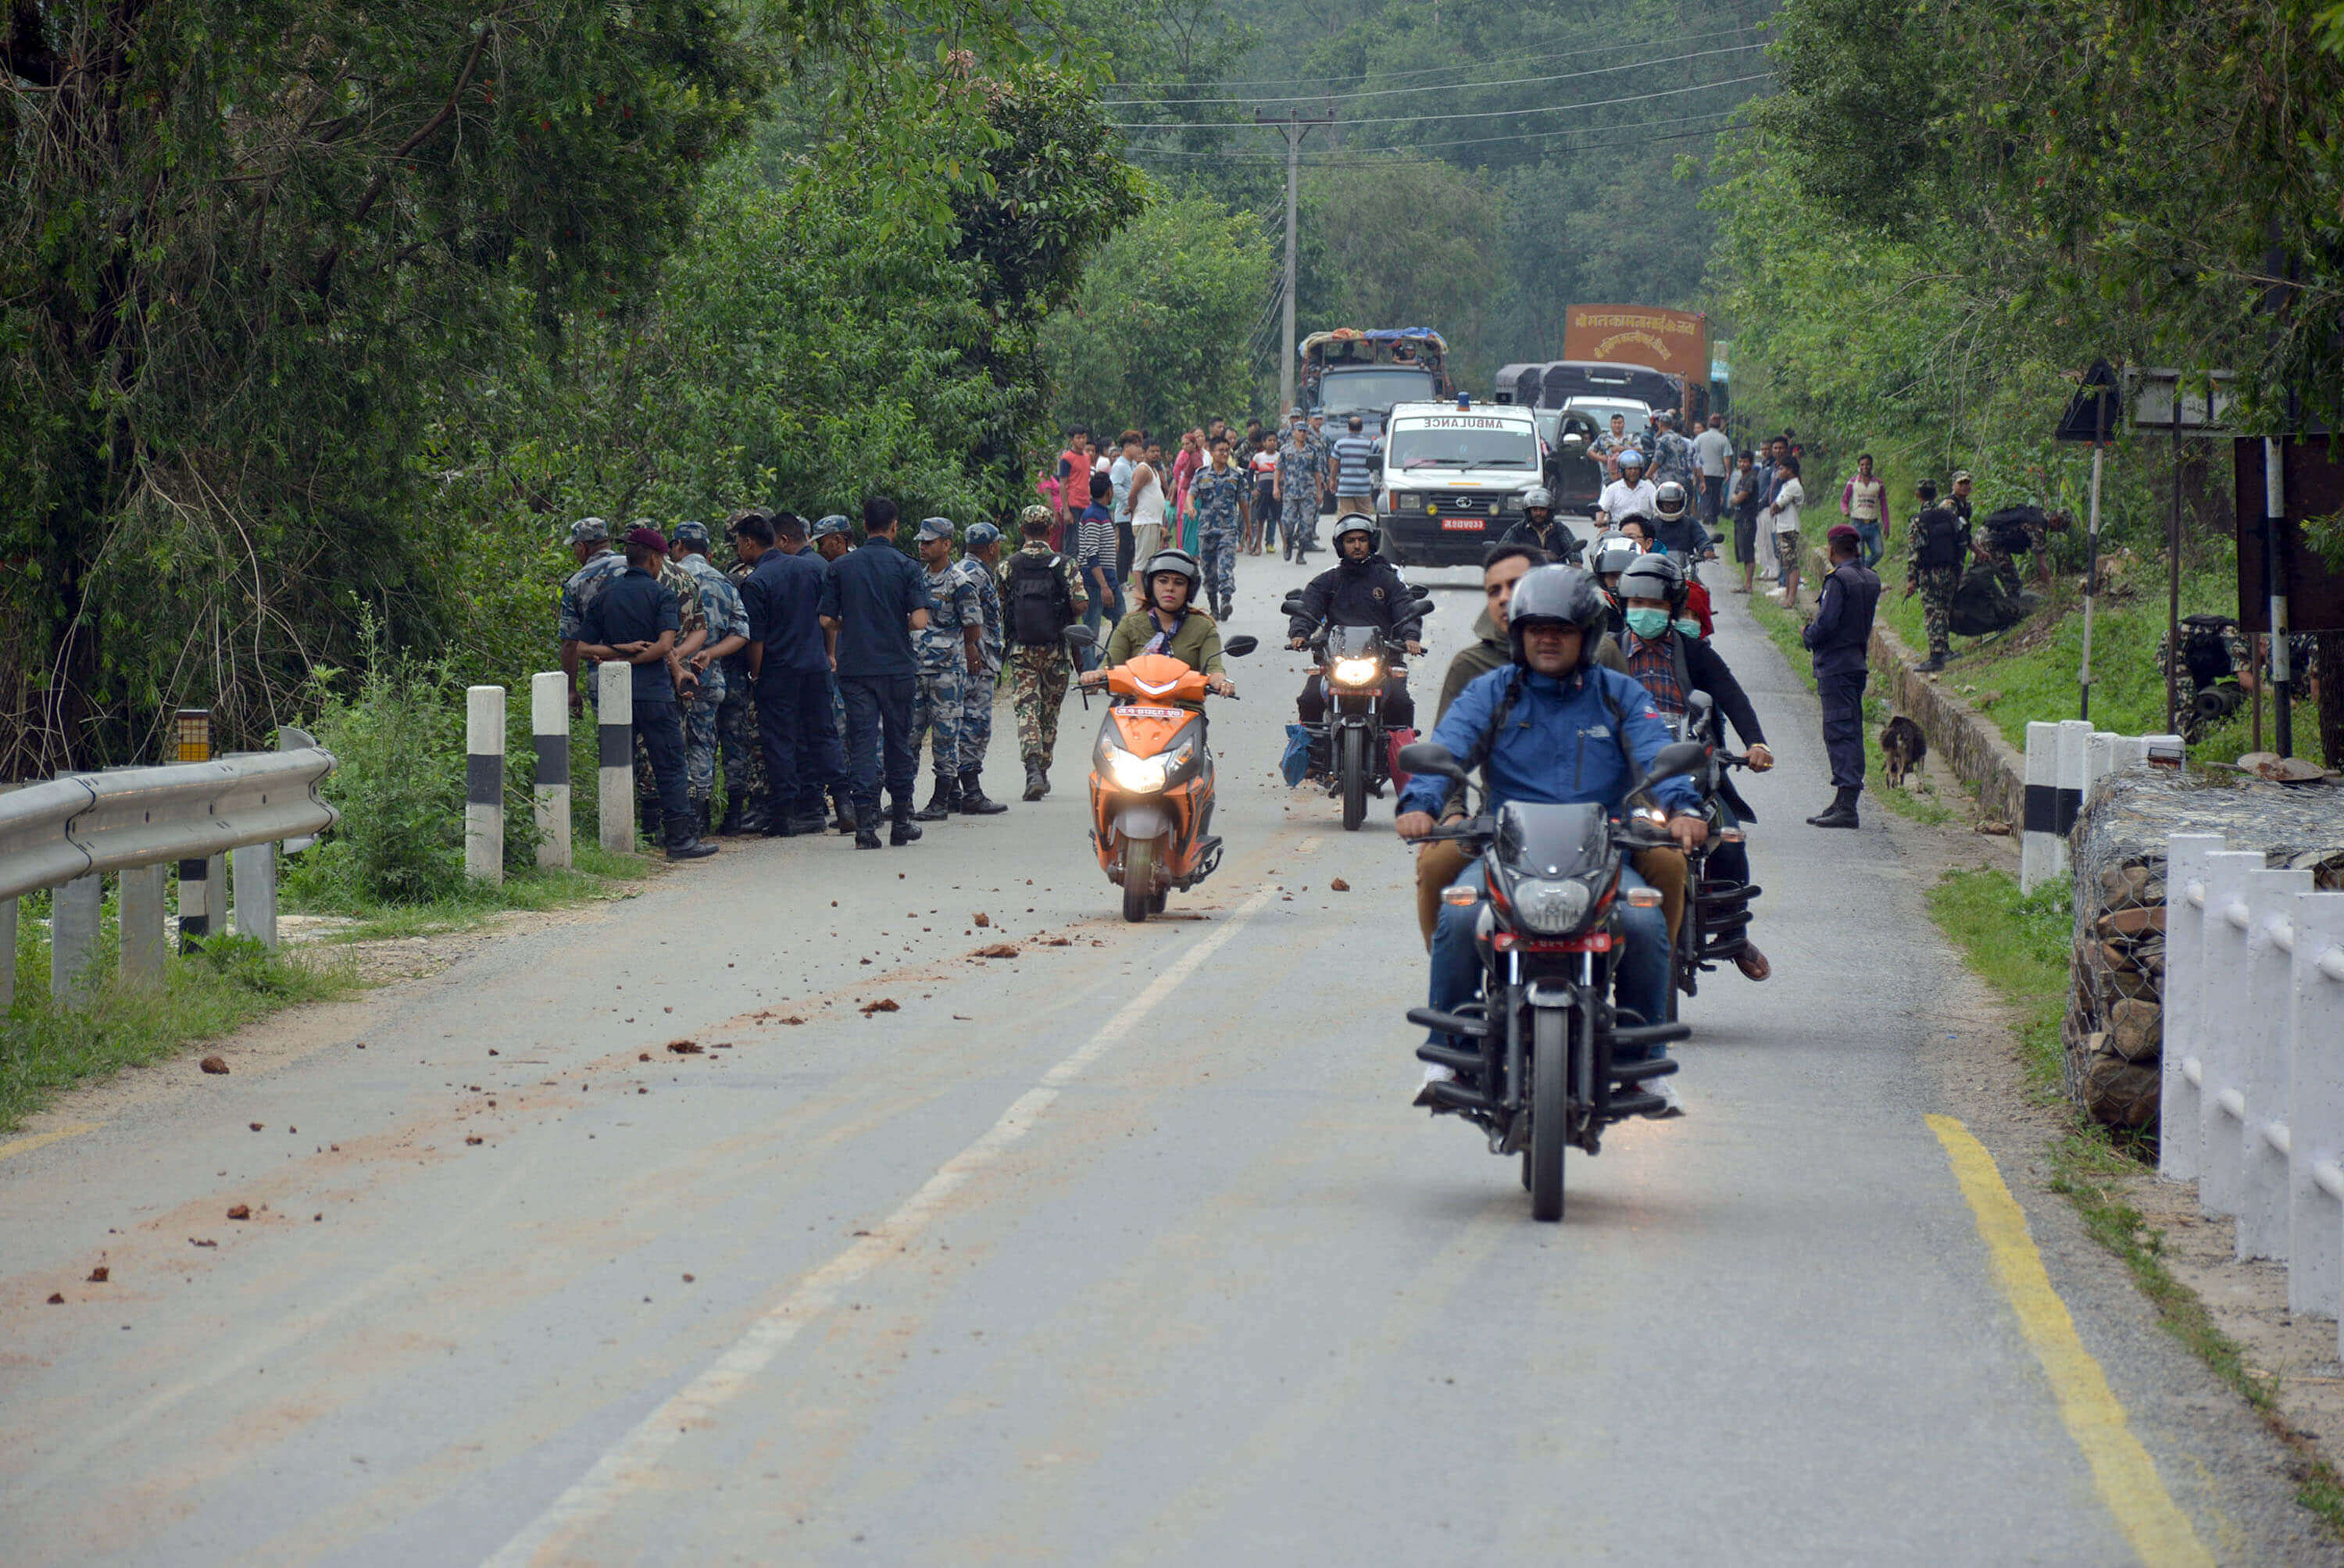 Locals go on with their daily life after a team from Nepal Army dismantled a suspicious object found in Byas Municipality, Tanahu on Monday morning. The Nepali Communist Party Maoist led by Netra Bikram Chand (Biplav) called nationwide strike on Monday, which saw multiple cases of suspicious objects across the country.